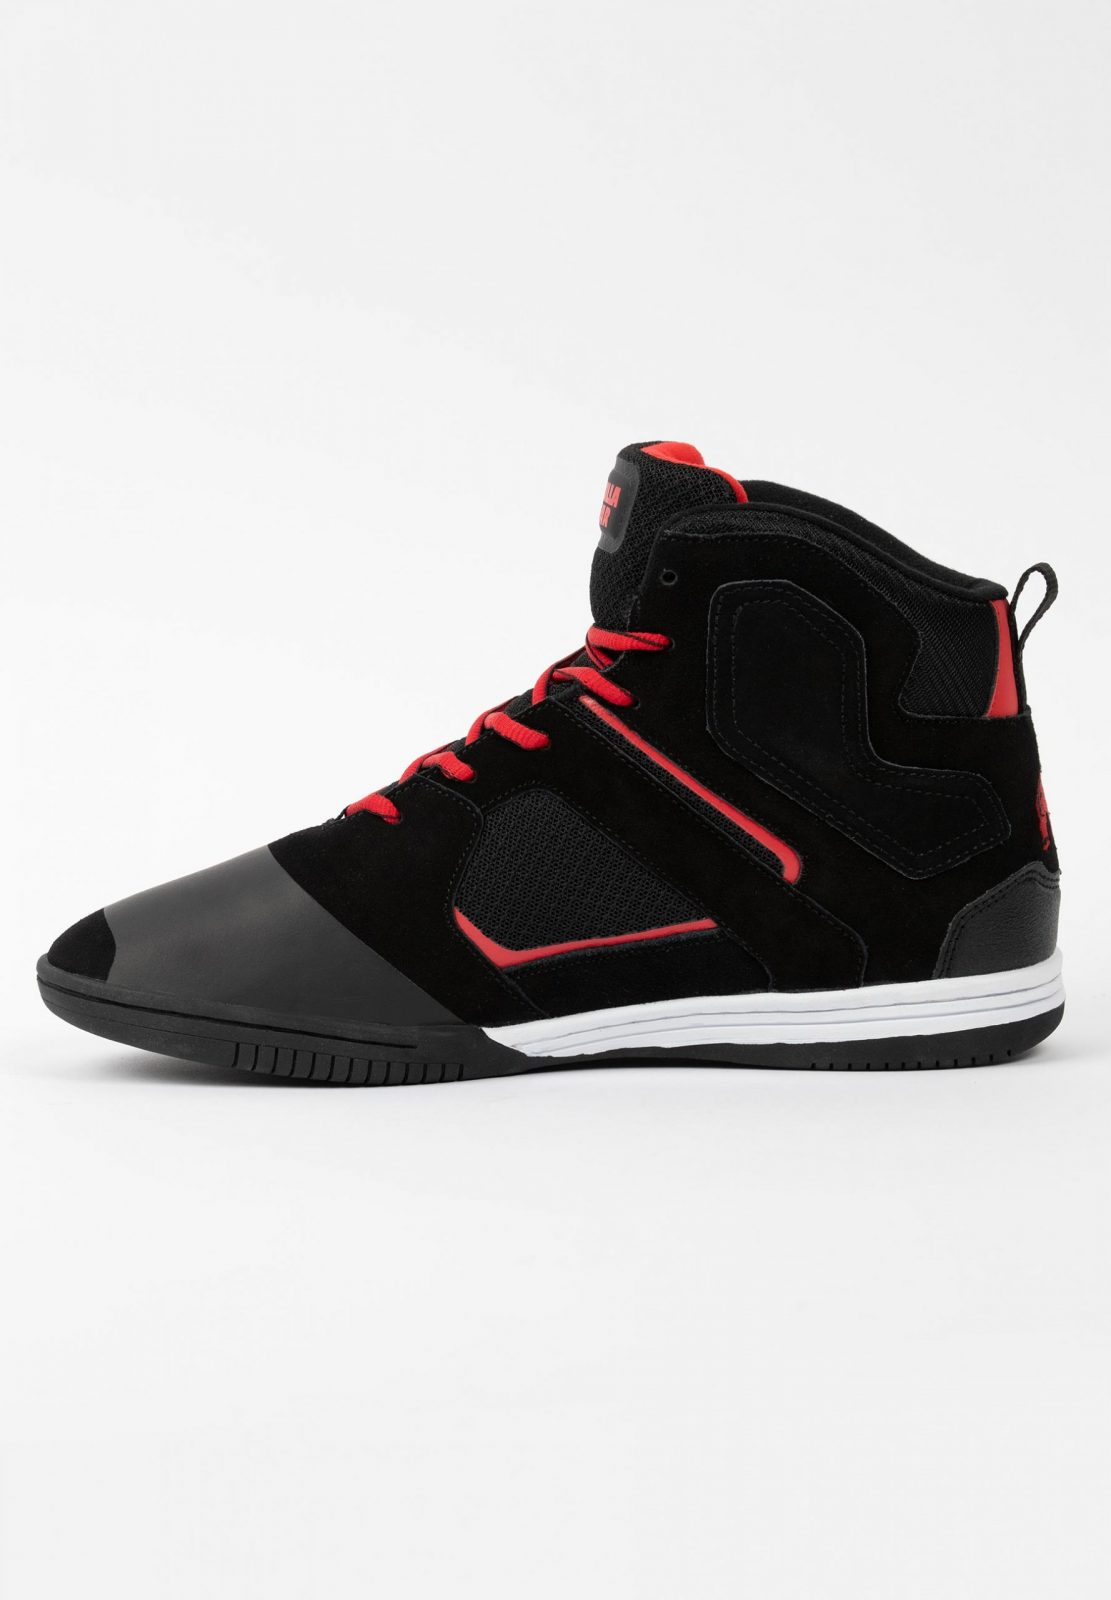 90009950-troy-high-tops-black-red-02